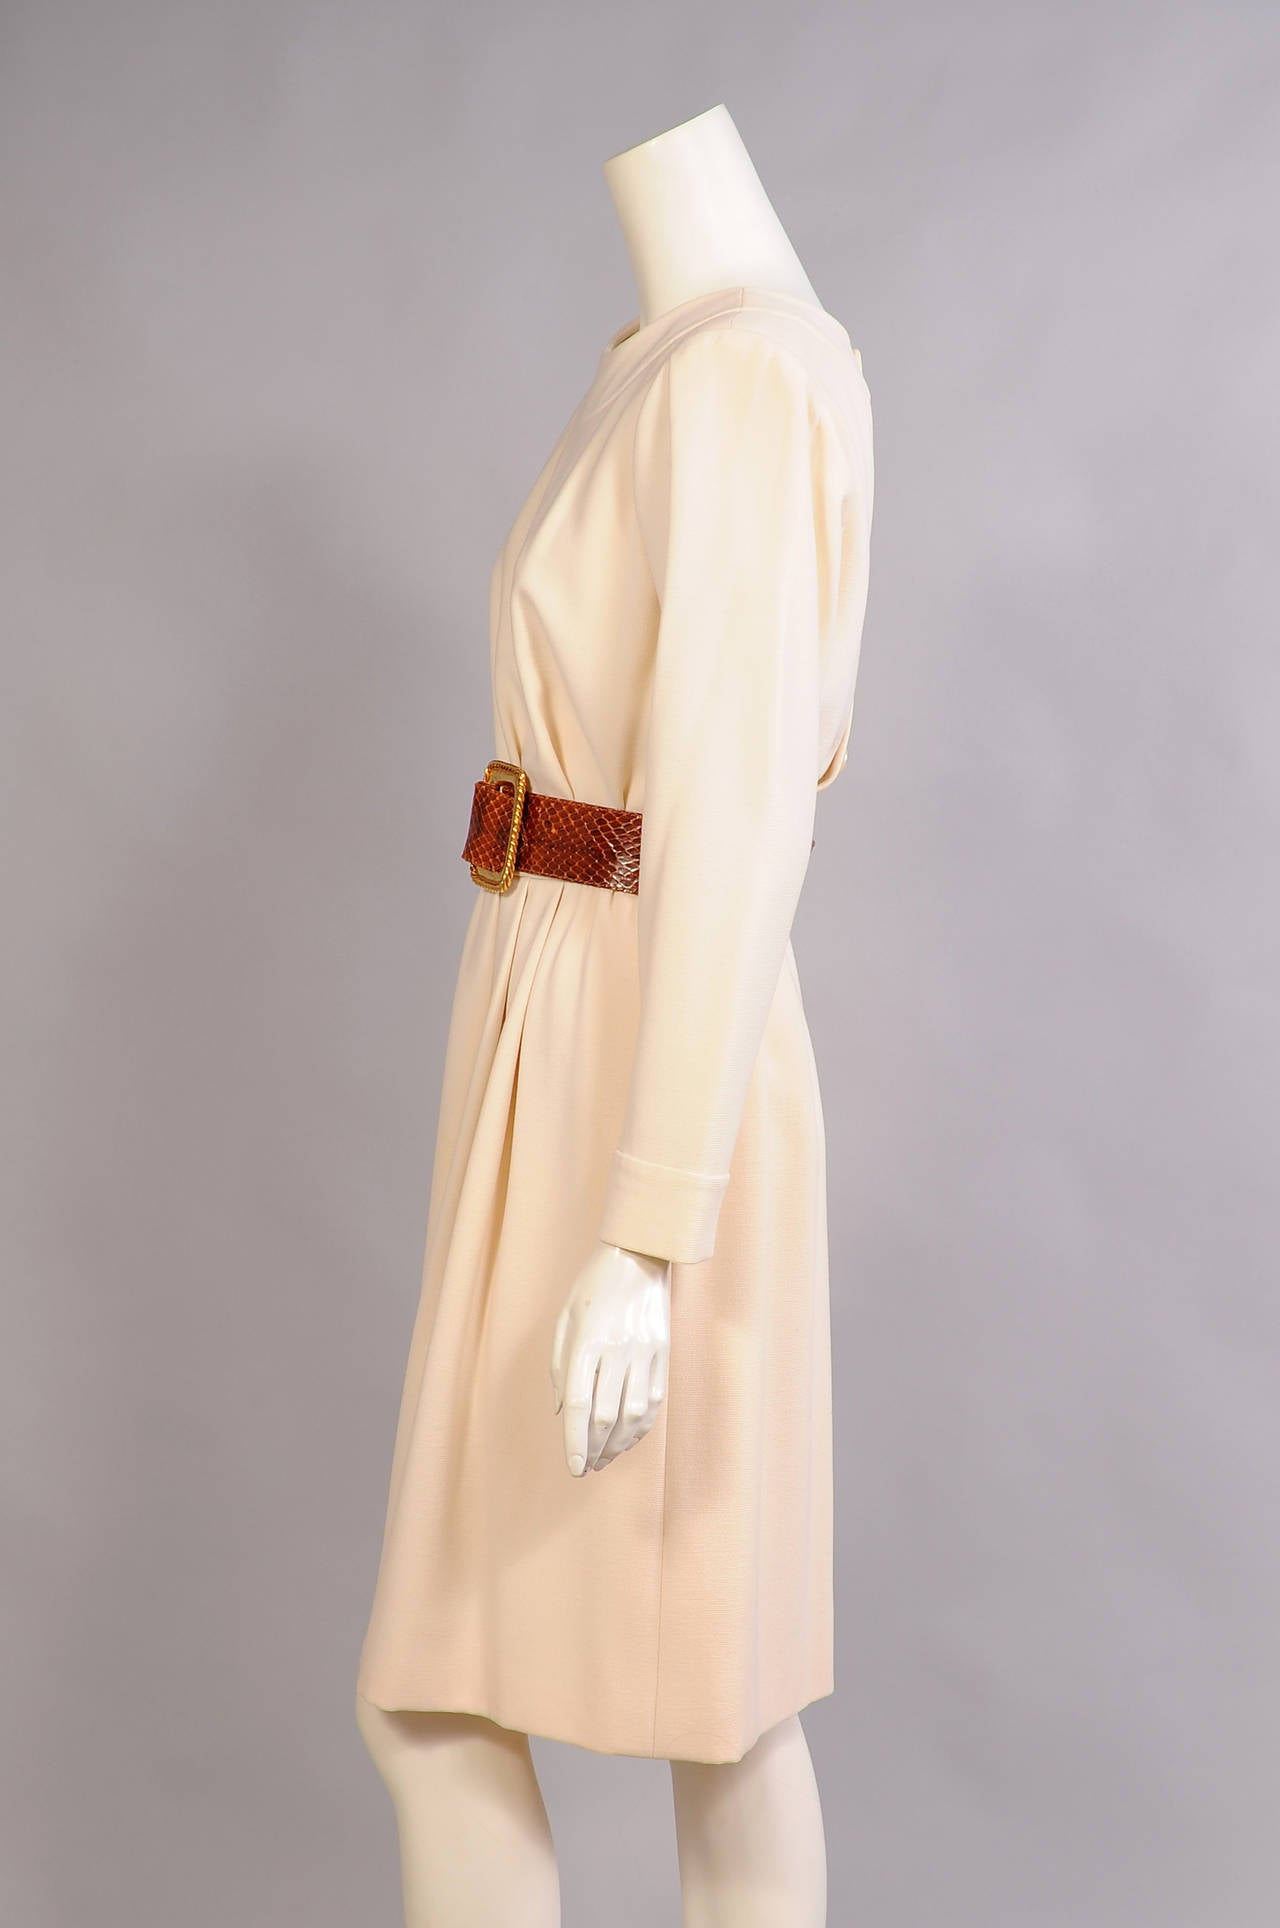 Yves Saint Laurent Haute Couture Winter White Coat And